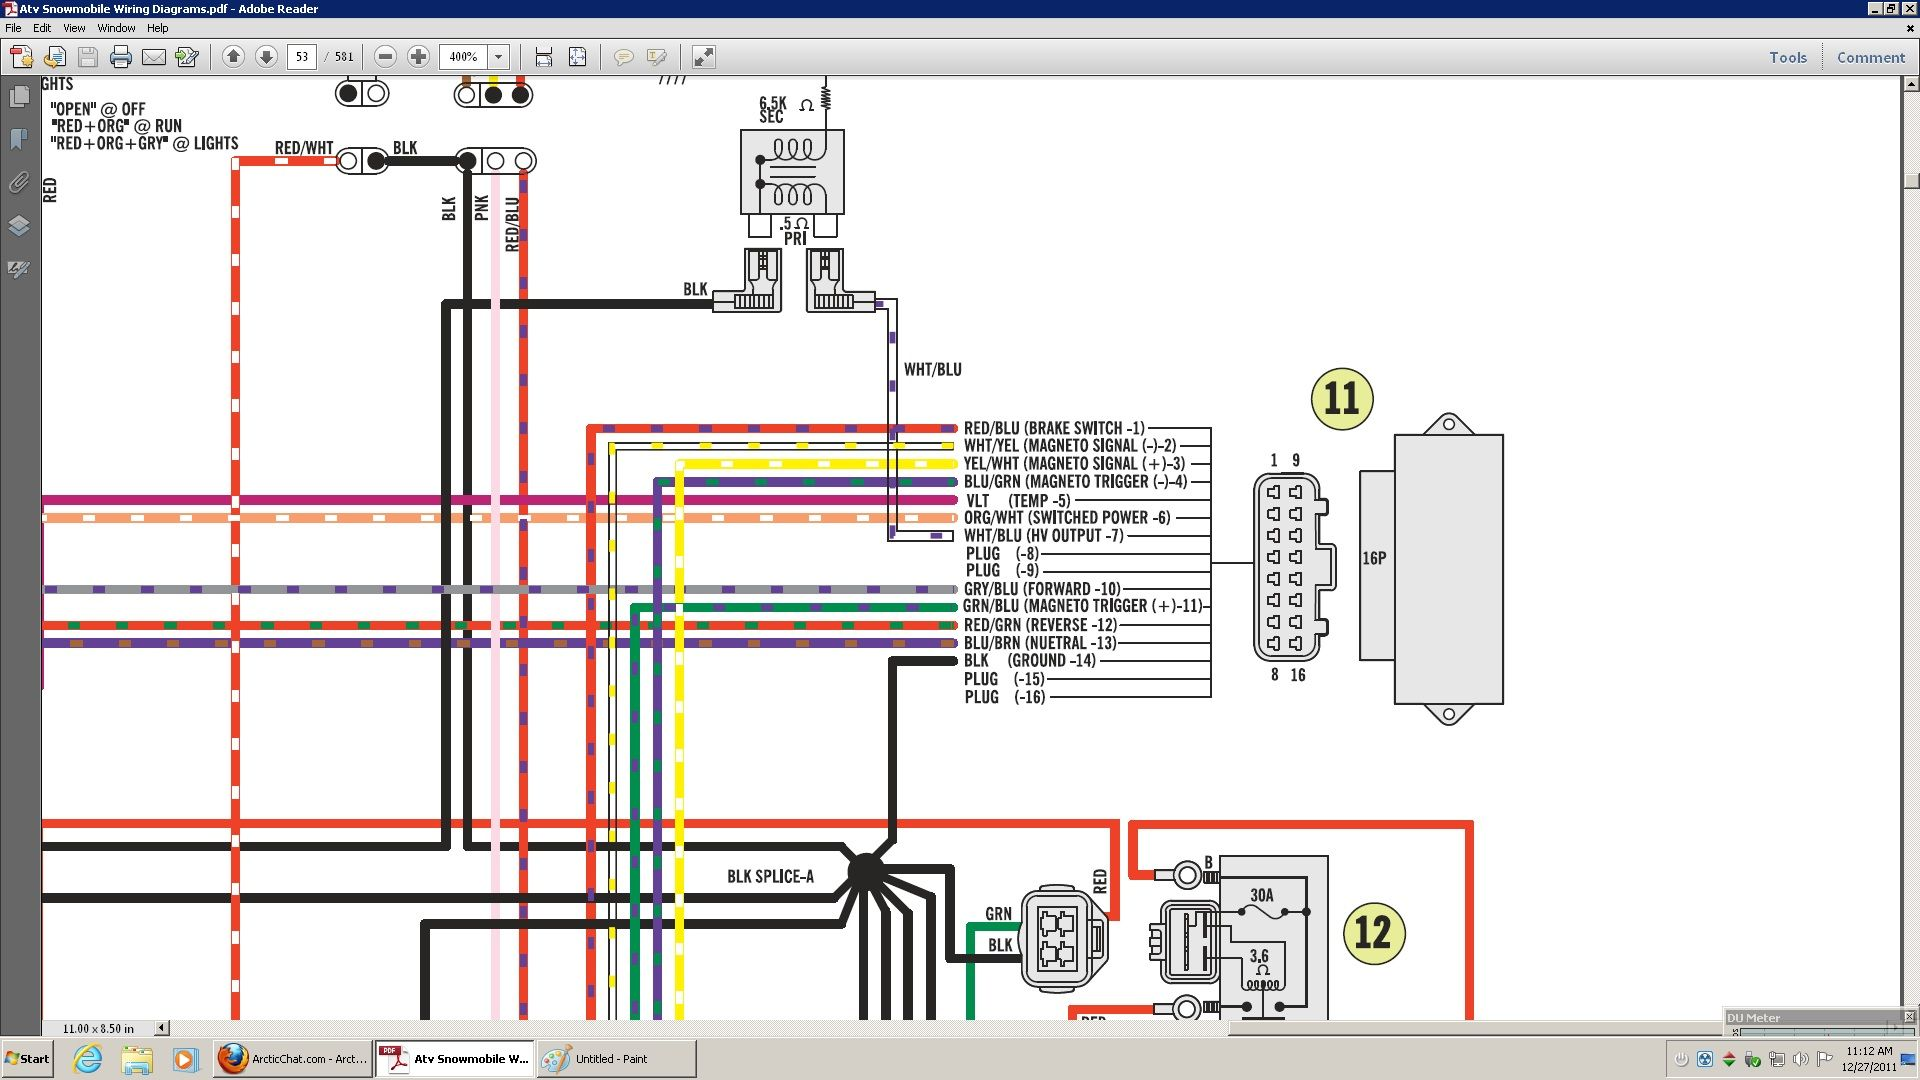 hight resolution of image result for battery wiring diagram for 2008 polaris atv polaris atv diagram image